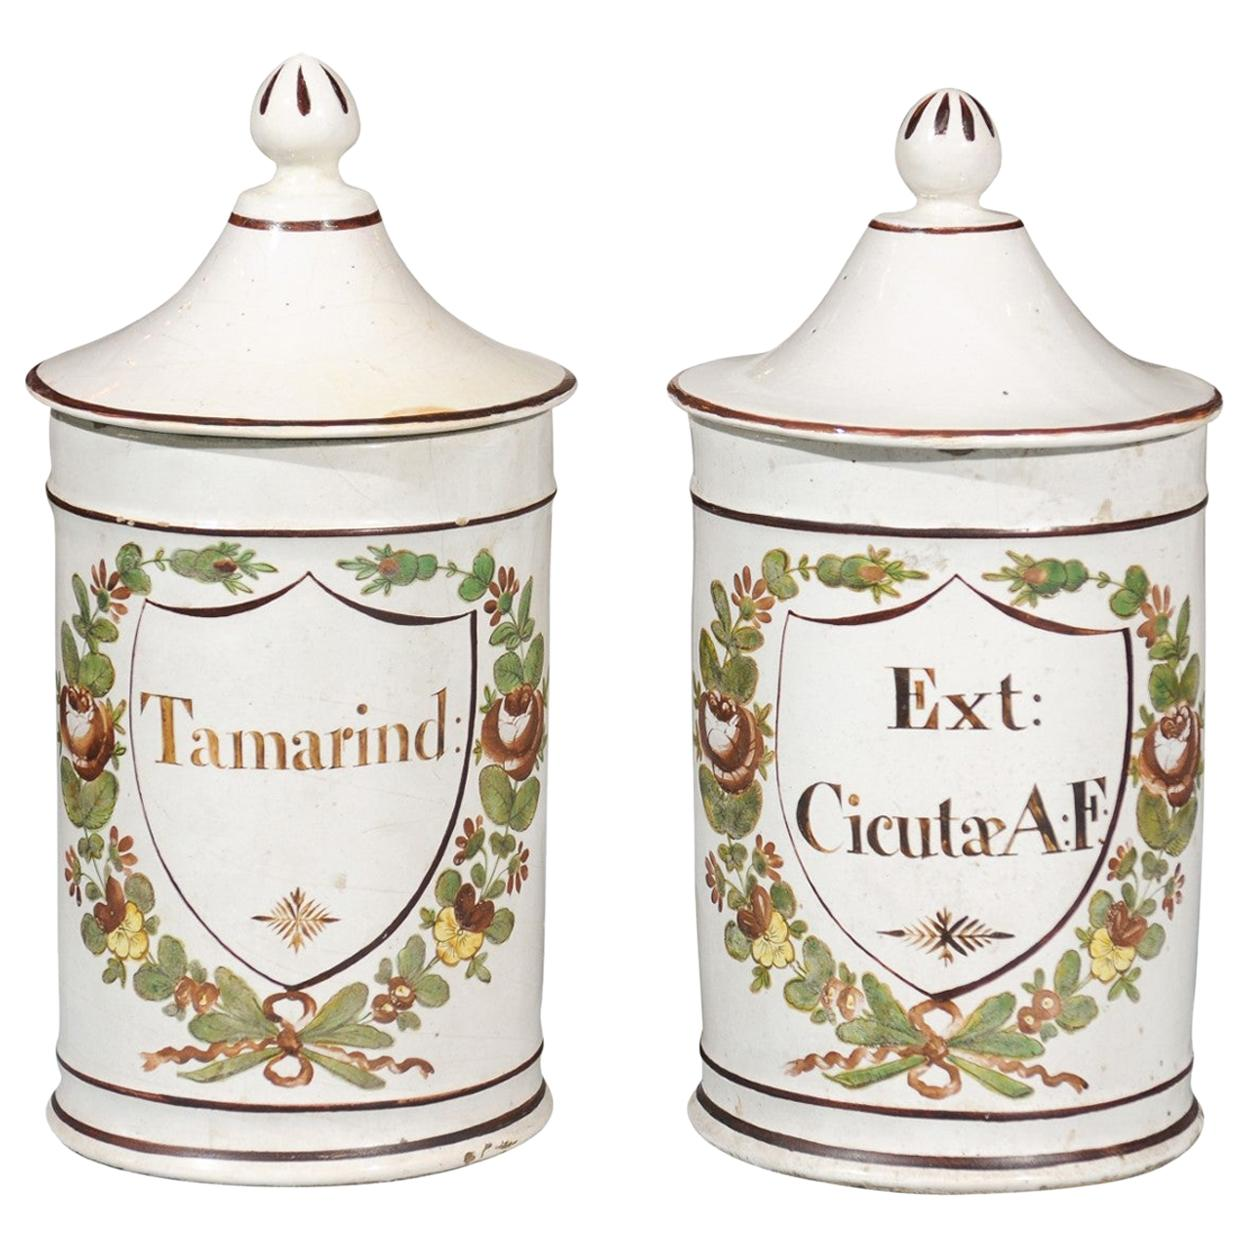 Pair of French Directoire Late 18th Century Lidded Apothecary Jars with Labels